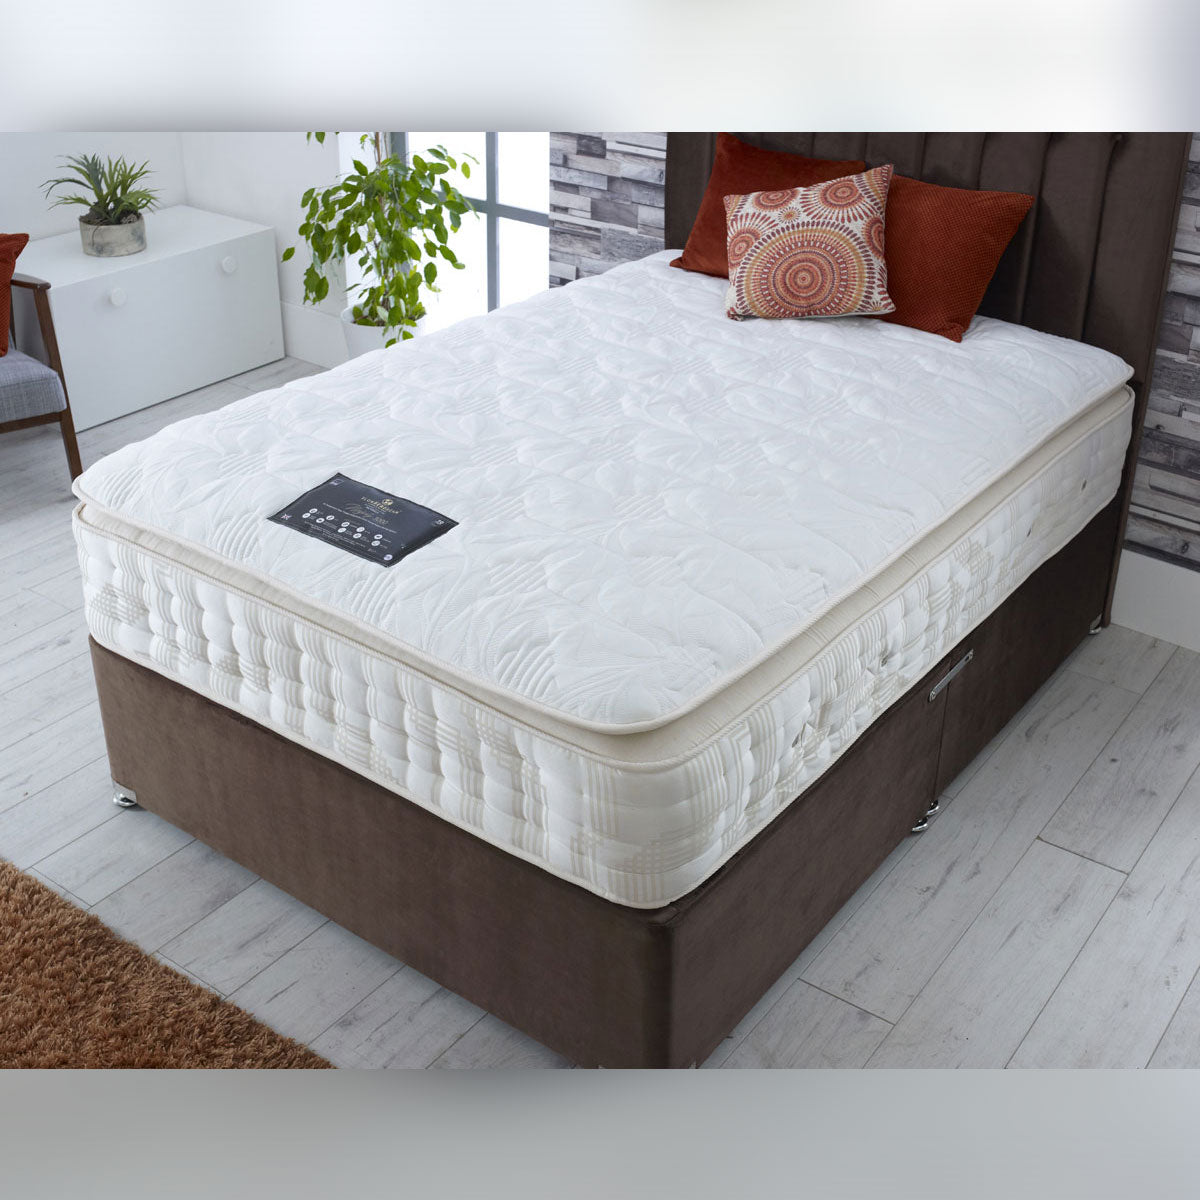 Diamond Collection Natural Majesty 3000 Pocket Springs Pillow Top Mattress Medium Firm 32cm Deep